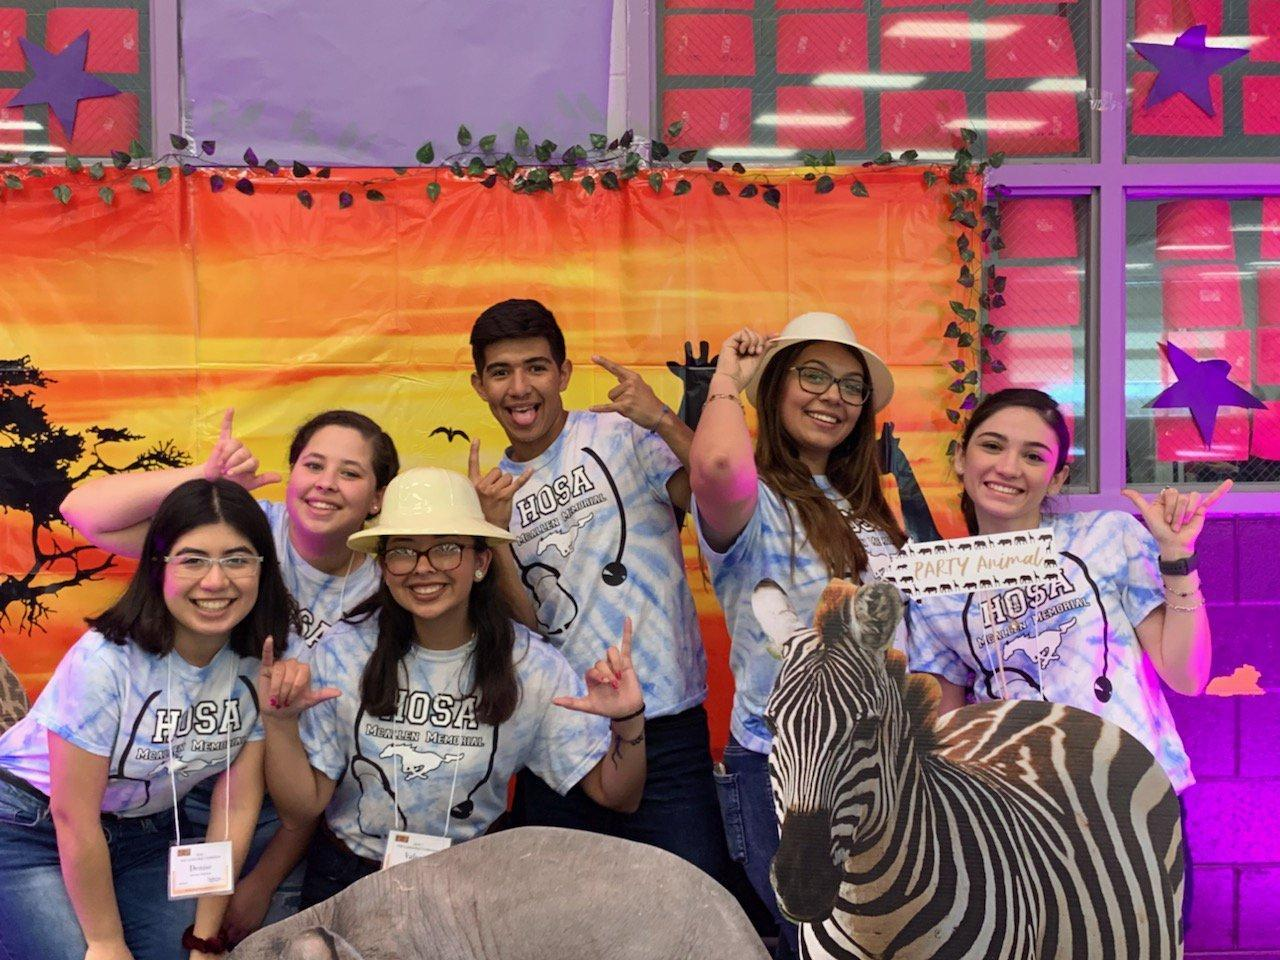 students posing with mustang hand symbol in front of safari themed background